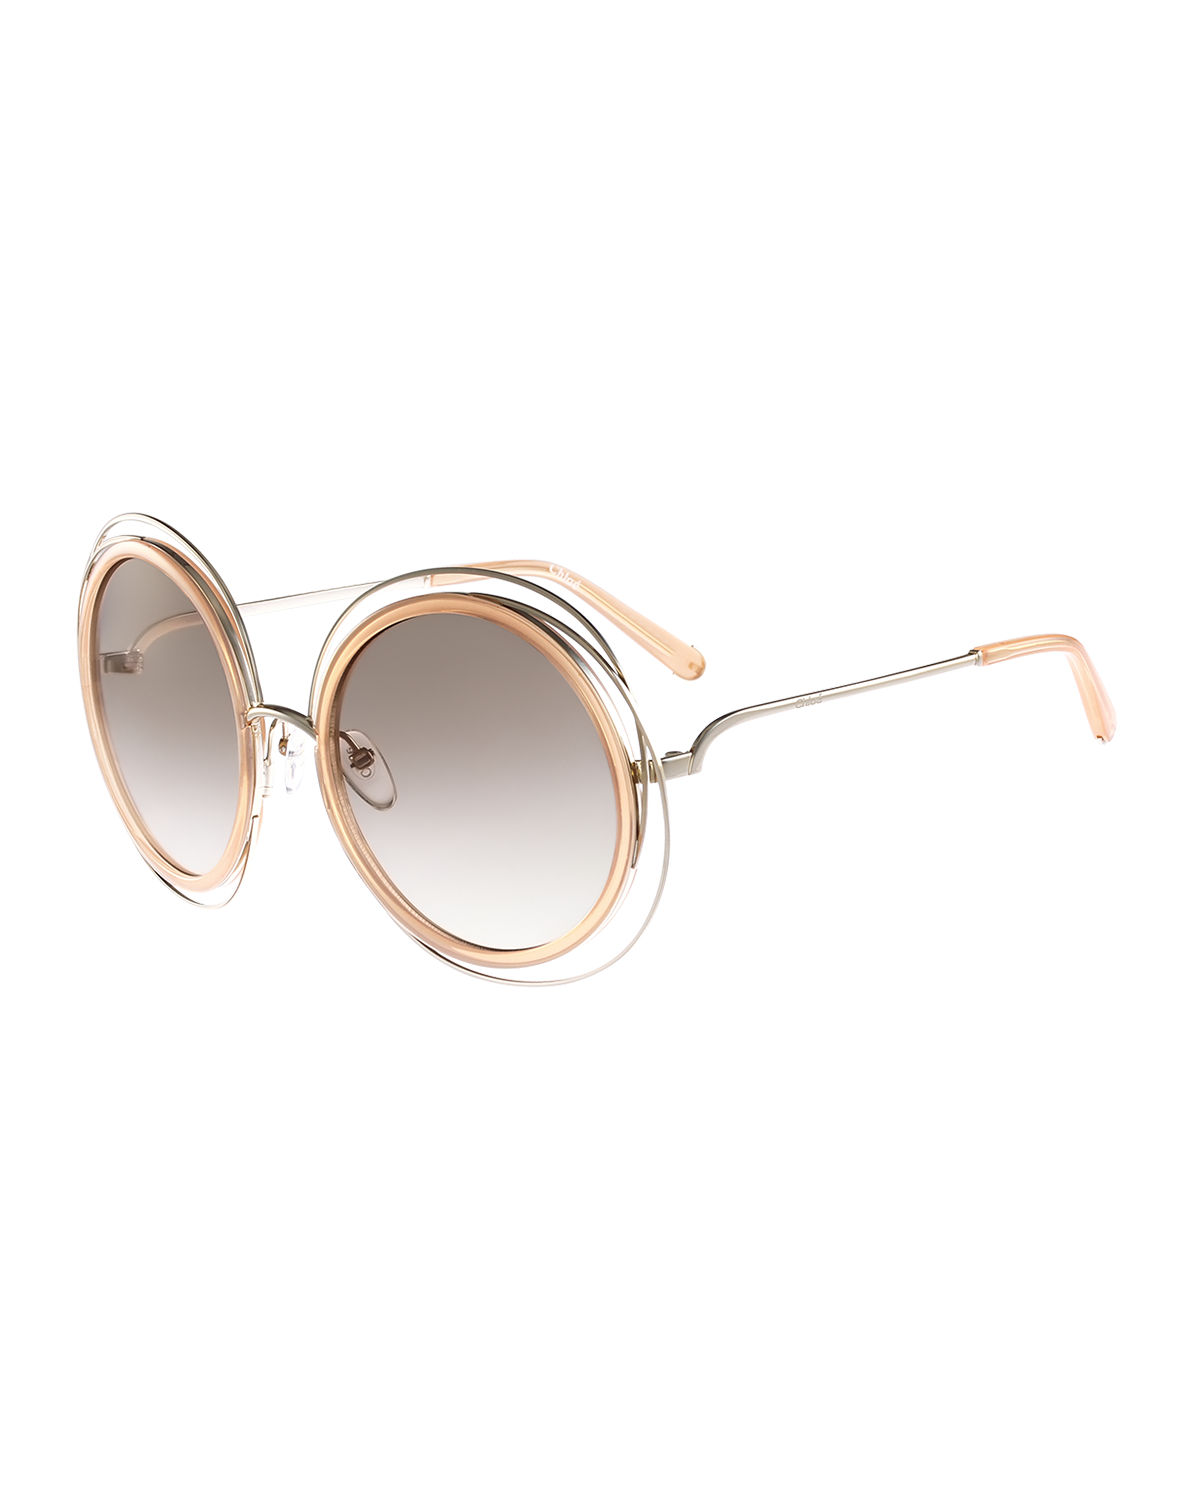 04ee7fd8542 Chloe Carlina Trimmed Round Sunglasses